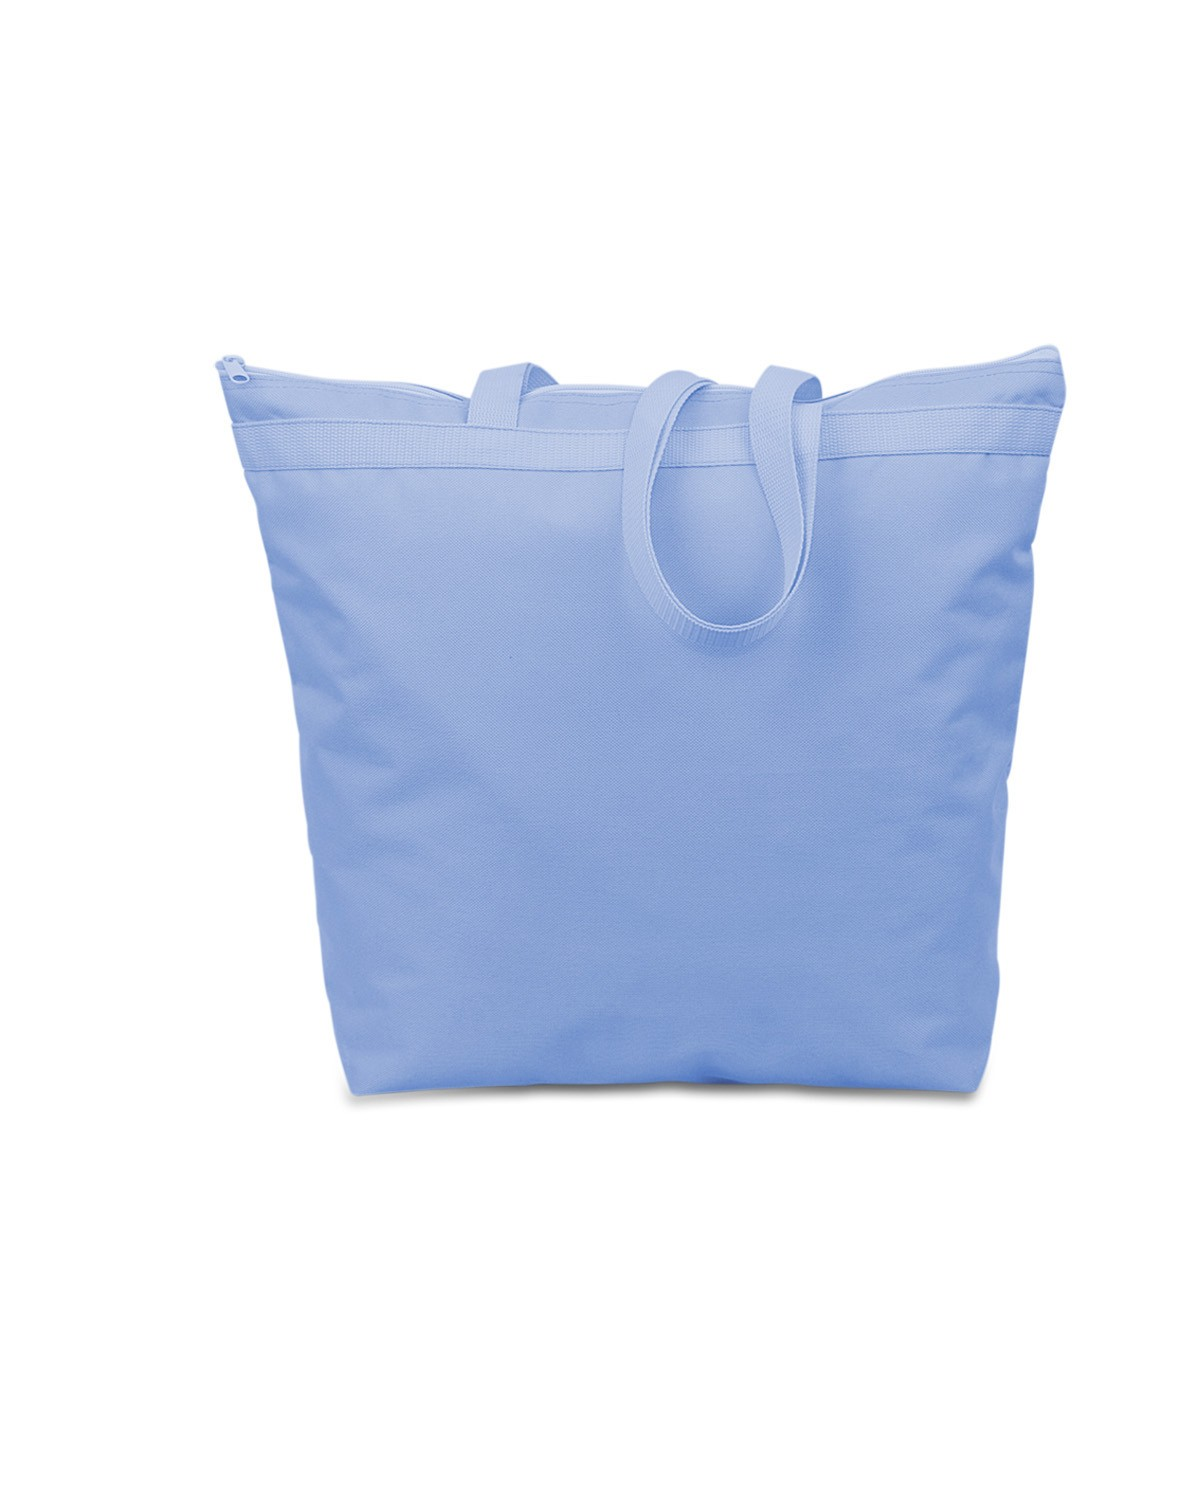 8802 Liberty Bags LIGHT BLUE